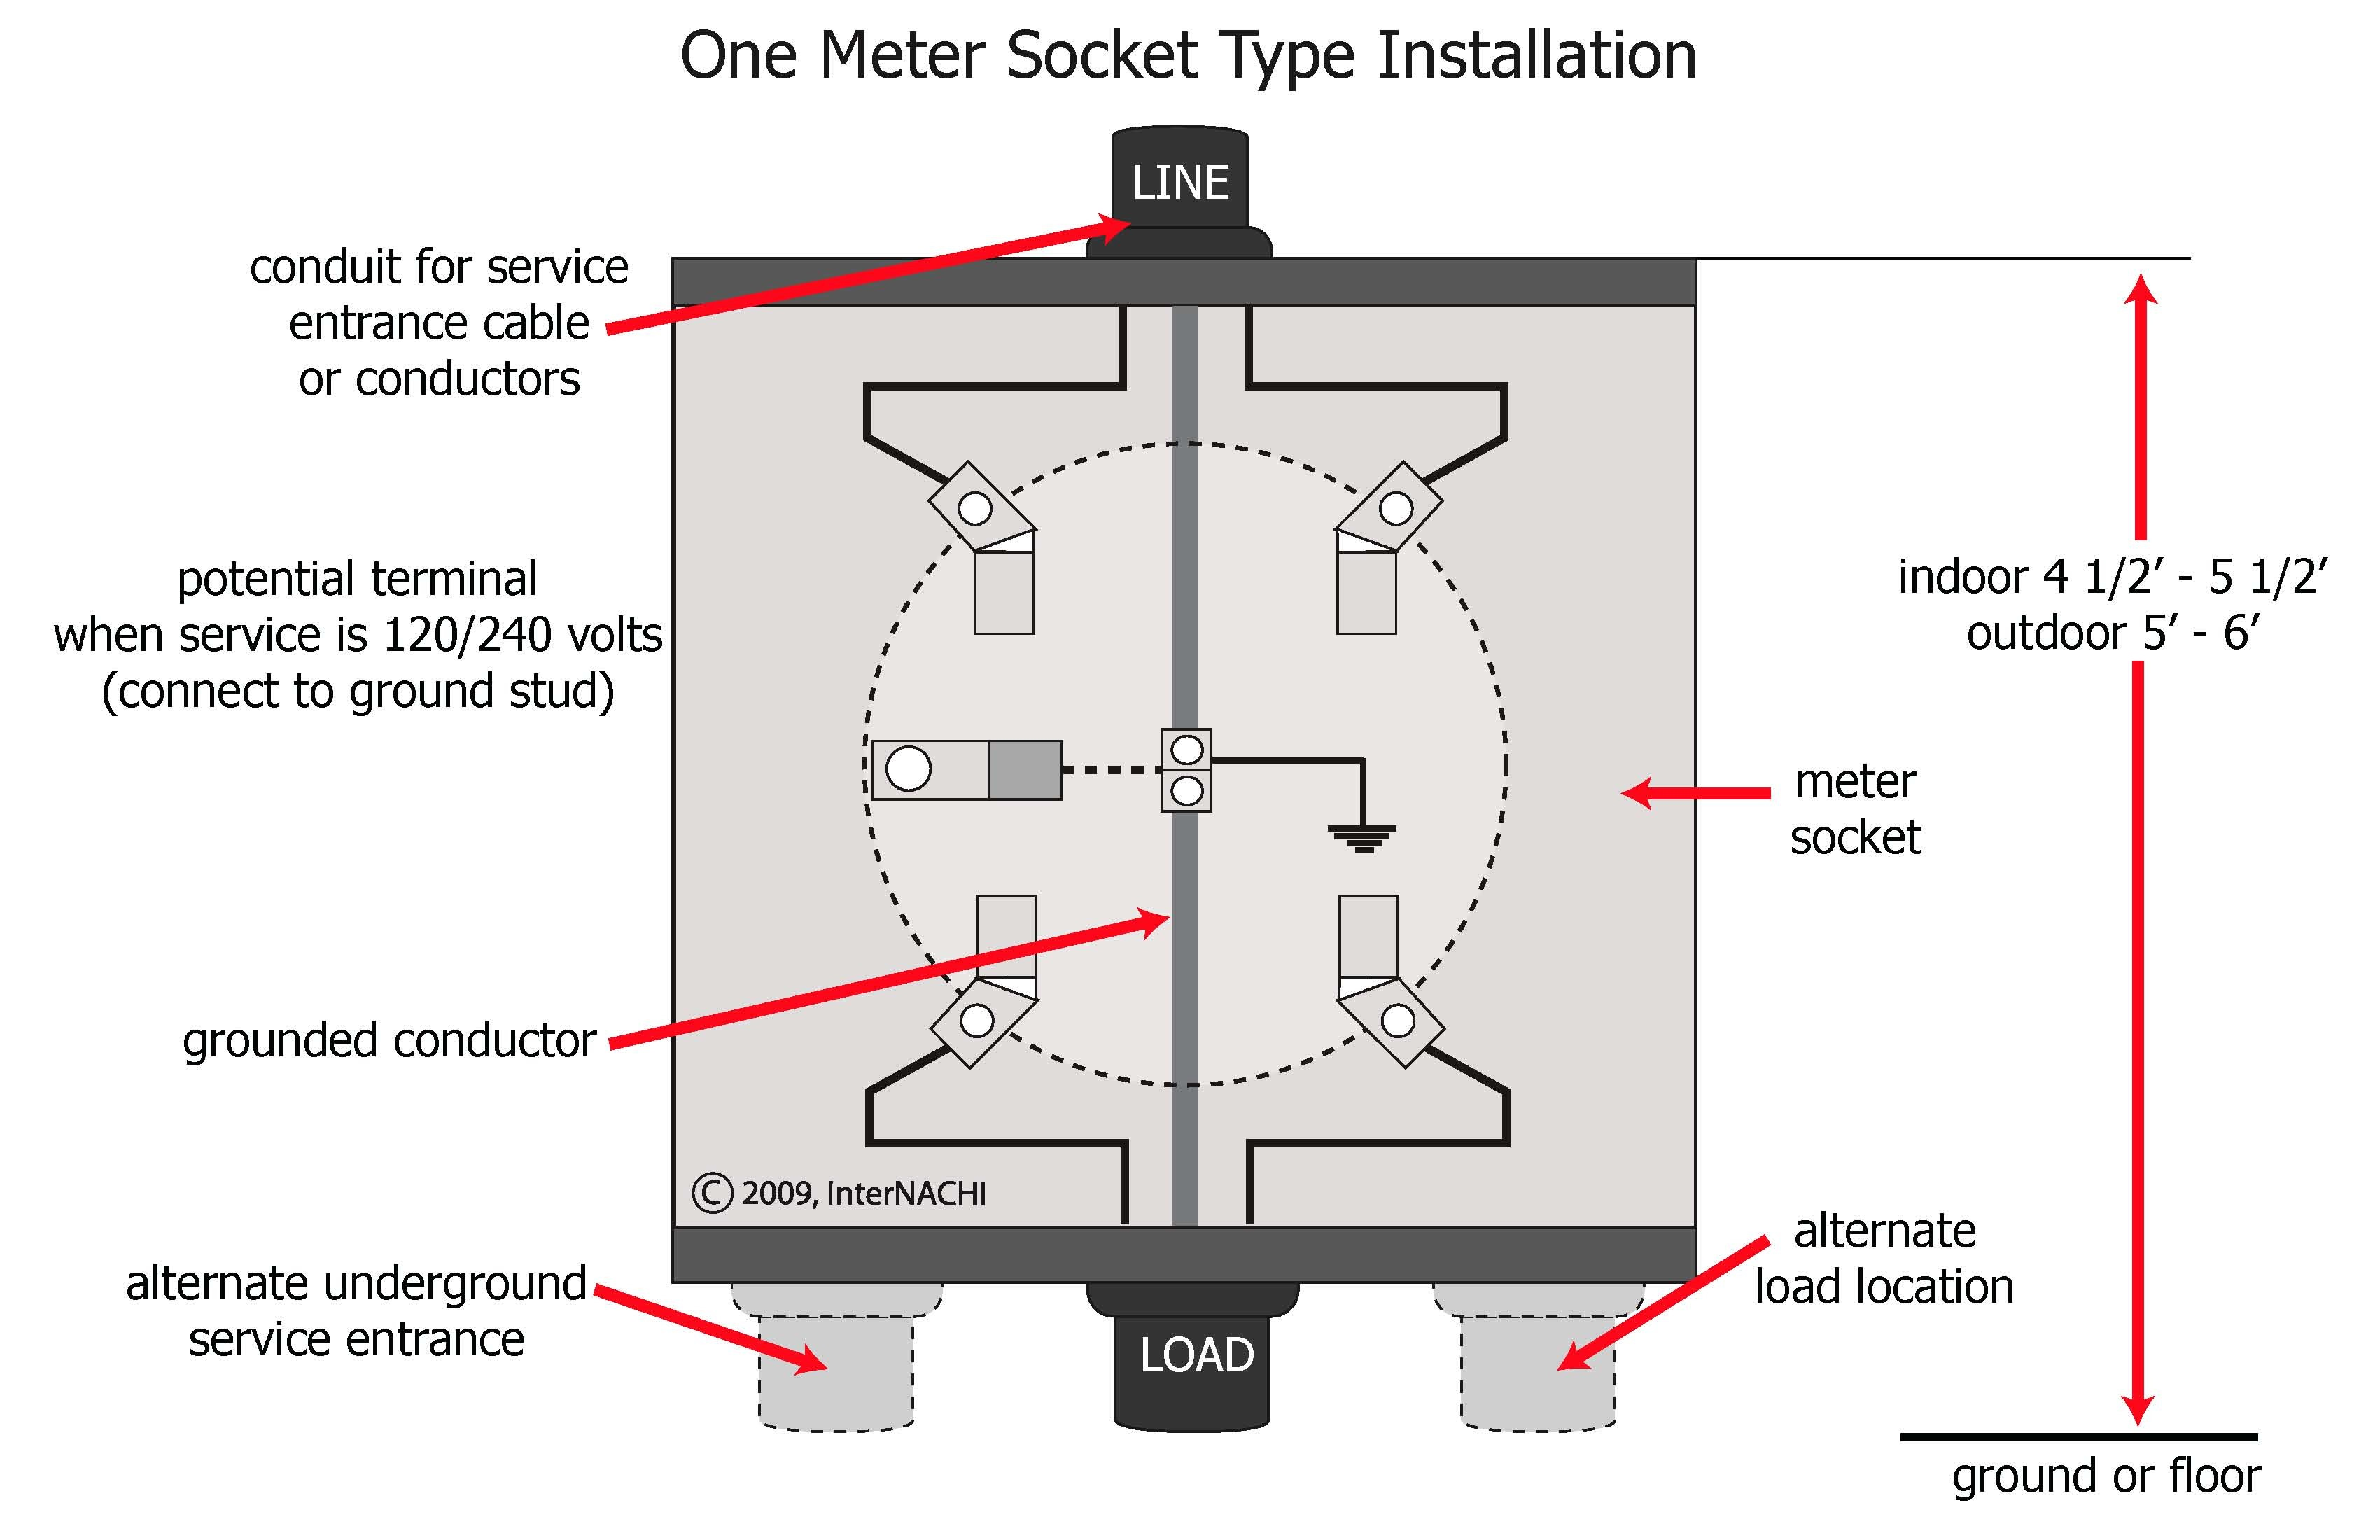 electric meter wiring diagram internachi inspection graphics library: electrical » service » meter-socket.jpg